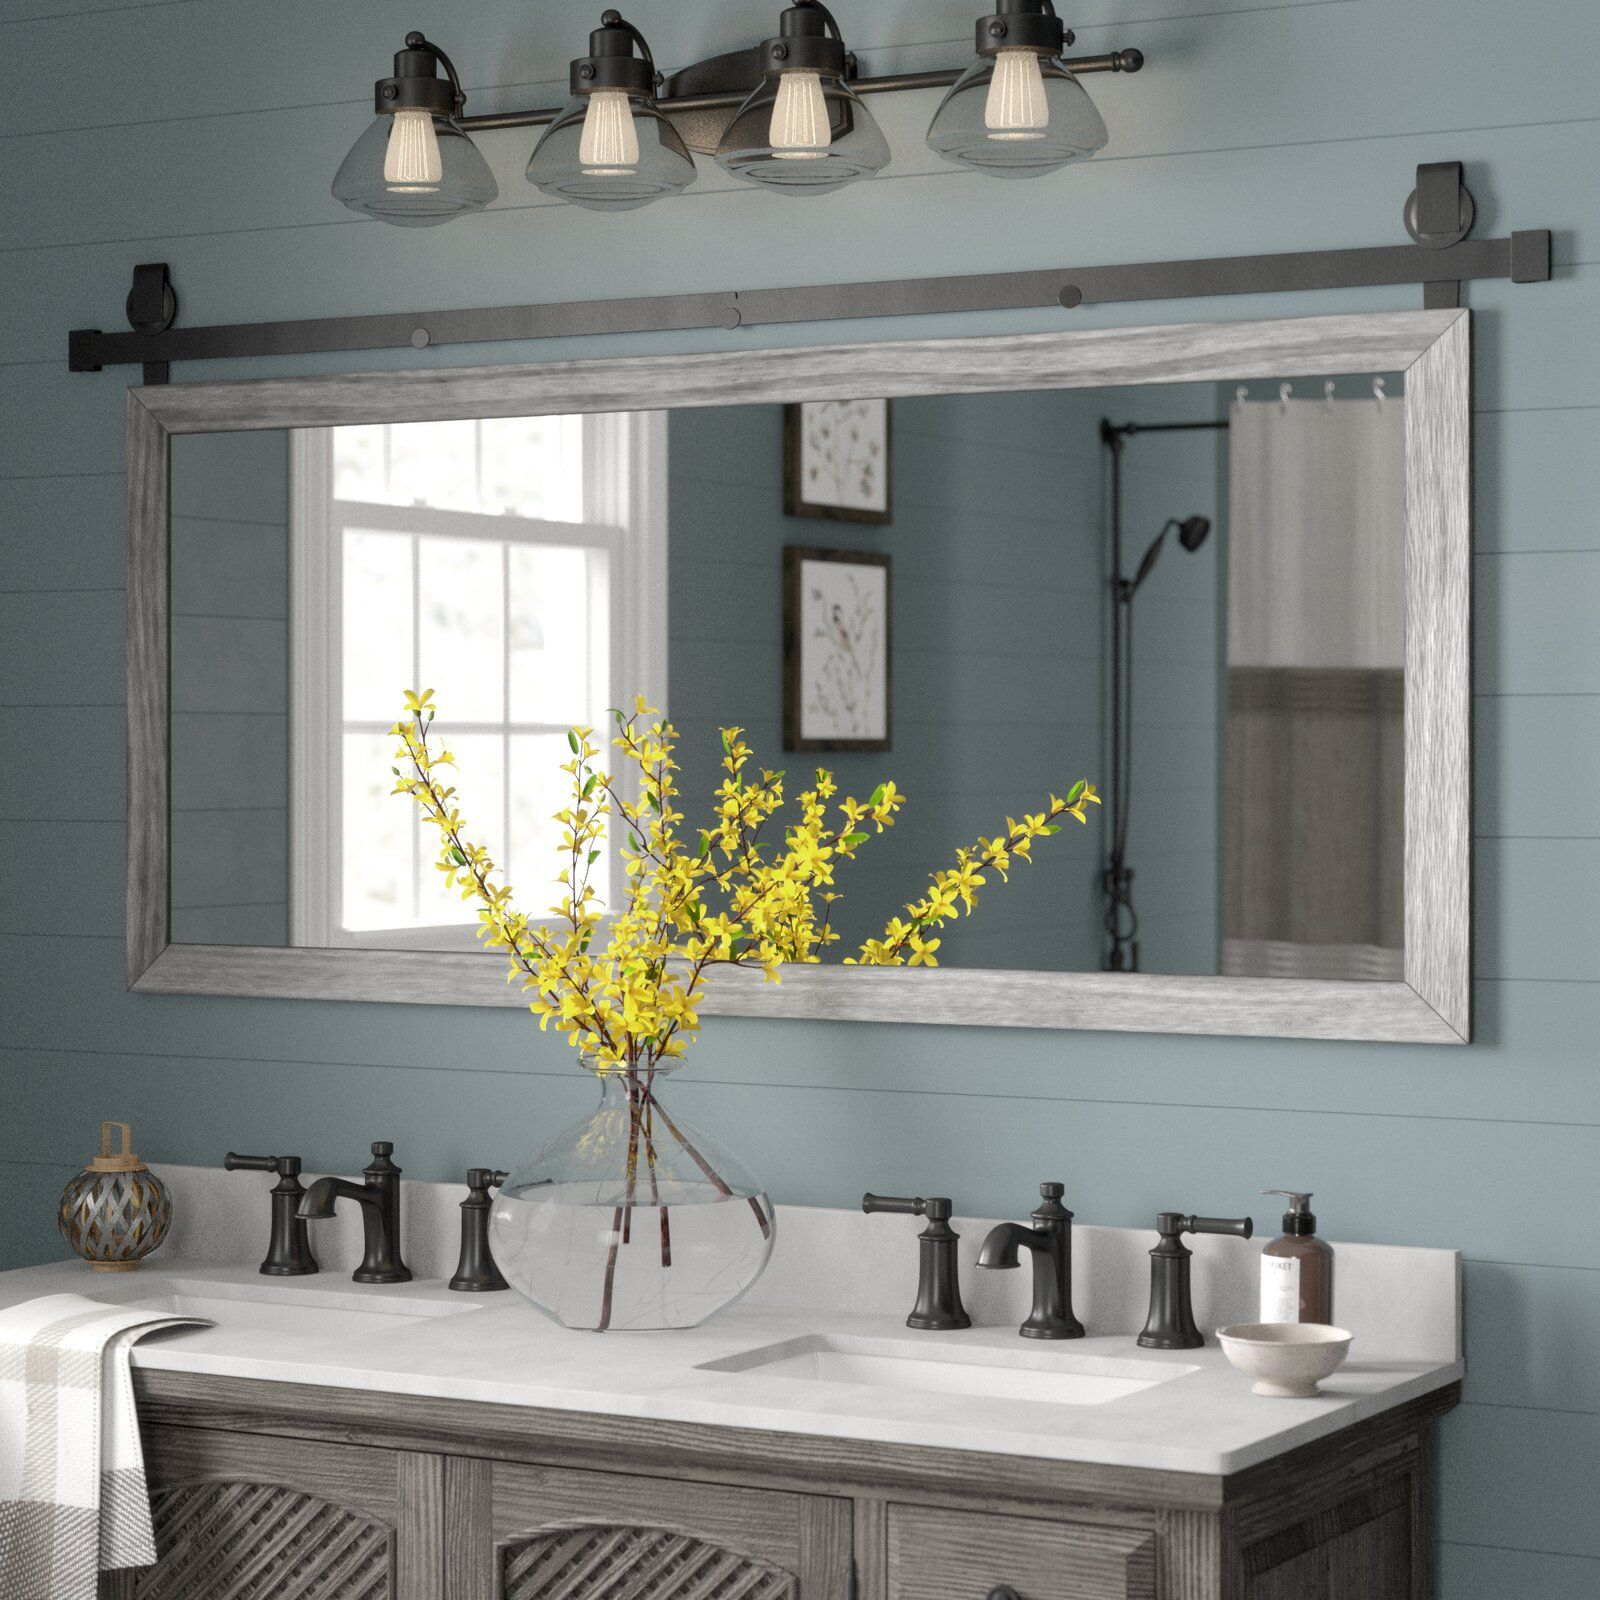 Gracie Oaks Nicholle Bathroom Vanity Mirror Wayfair Country